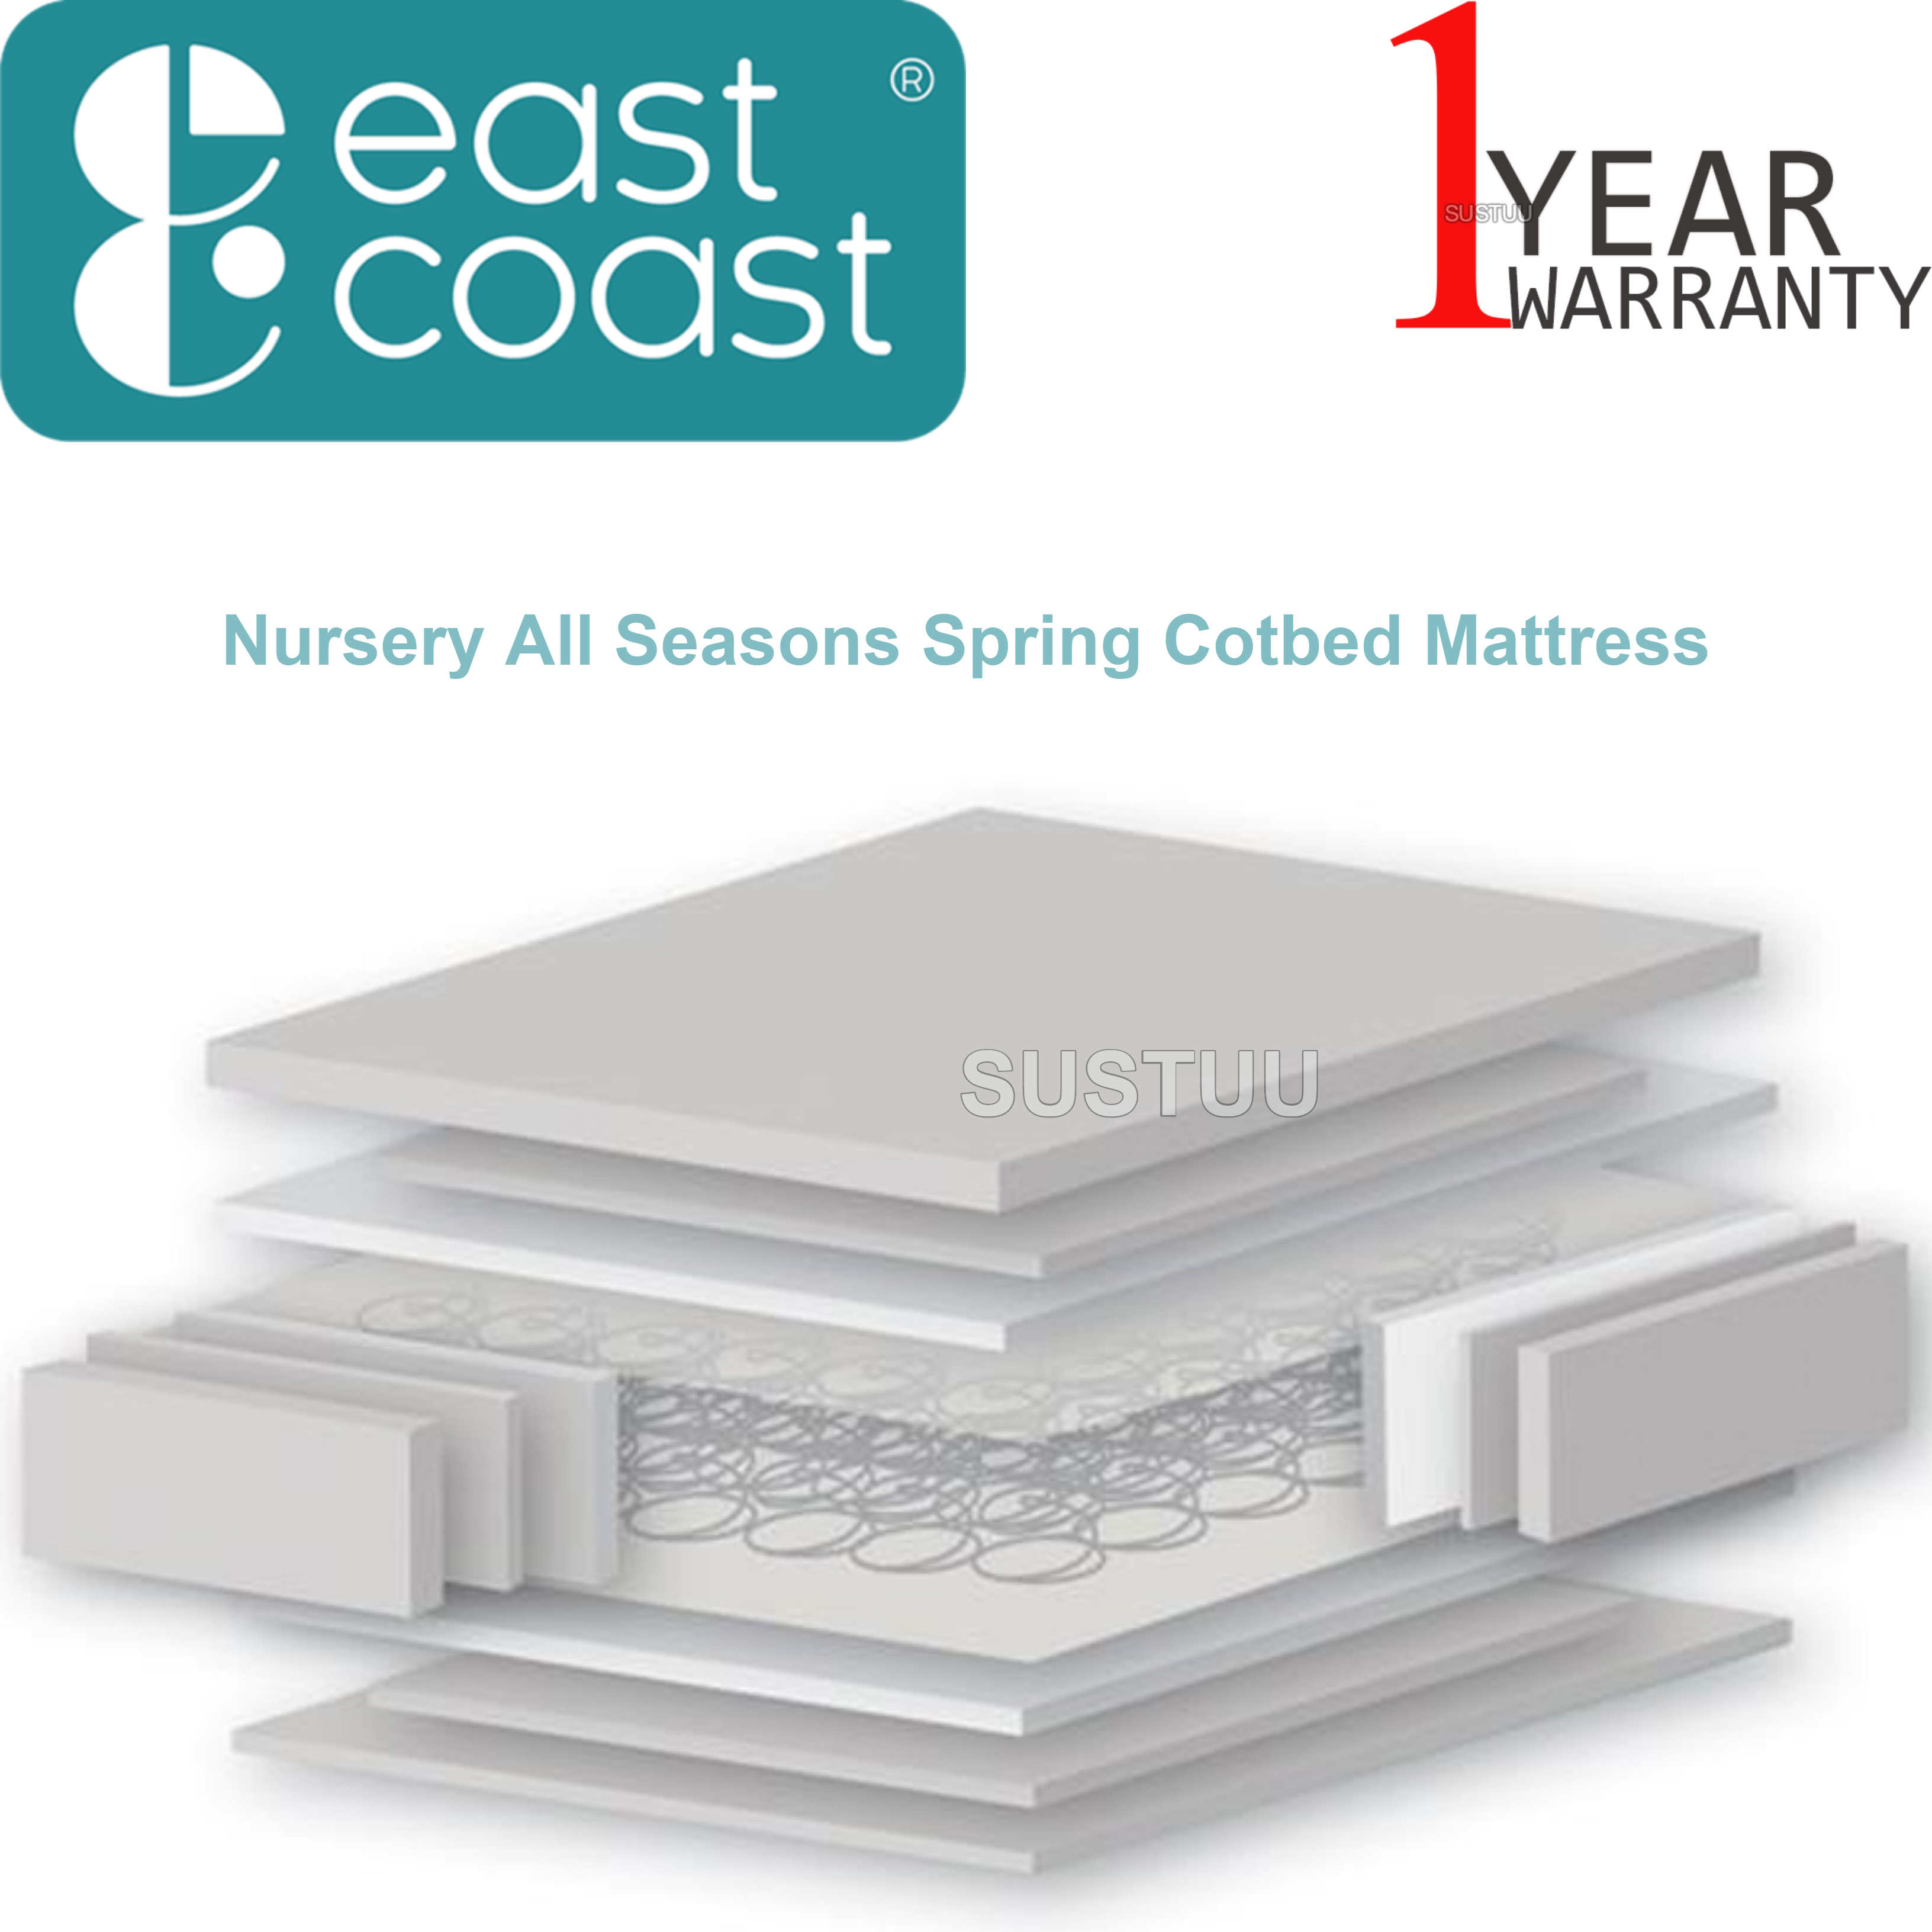 East Coast Nursery All Seasons Spring Cotbed Mattress | Soft, Comfortable & Safe